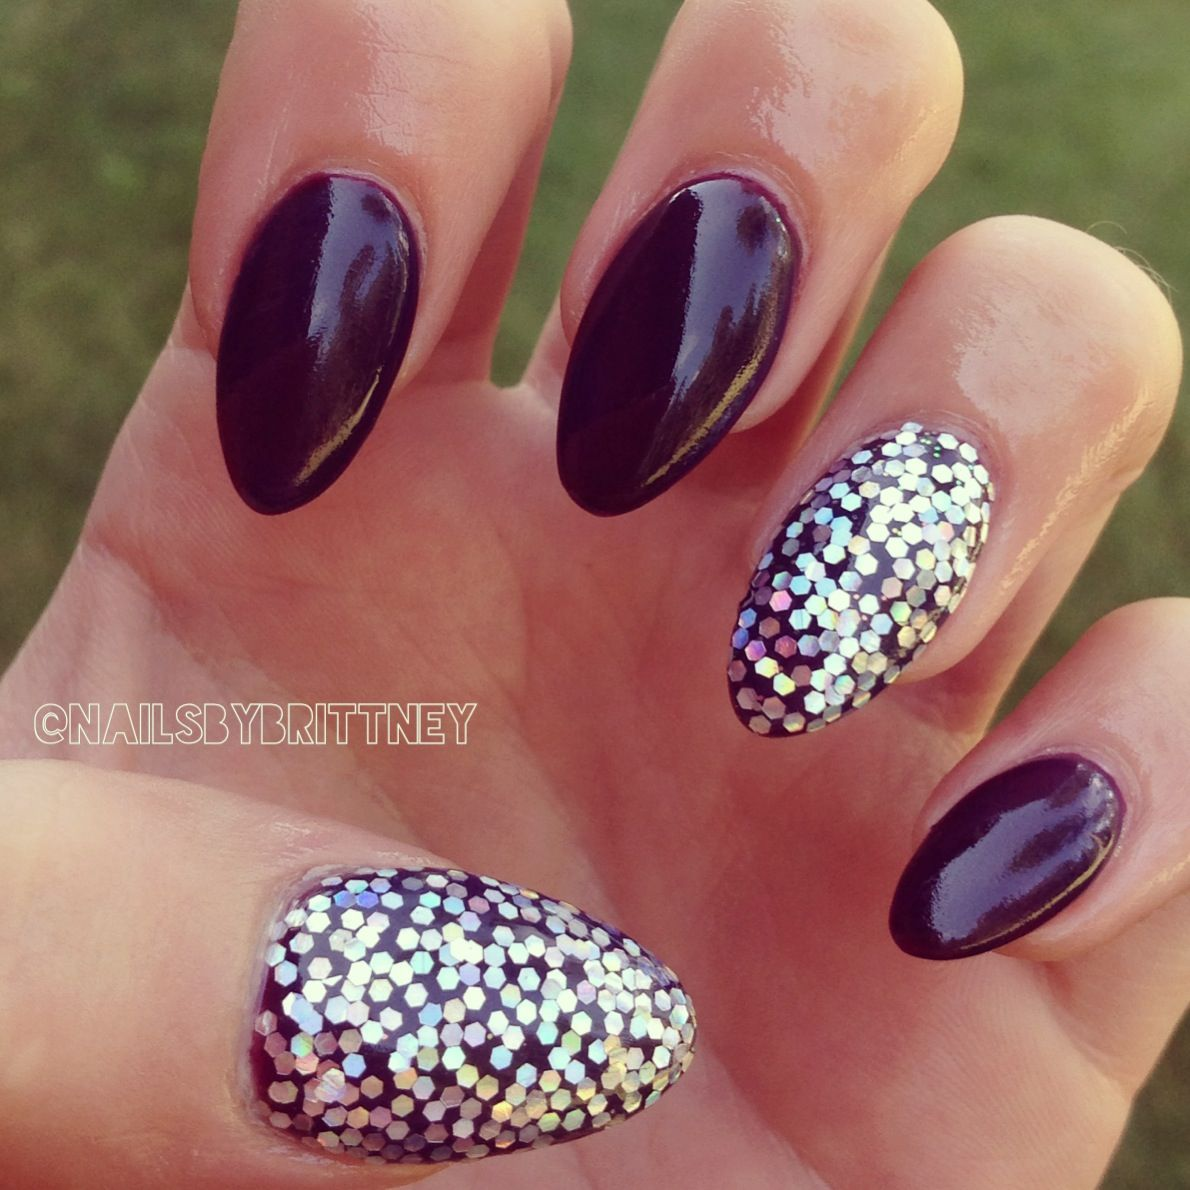 Fall almond nails ❤ | Nails | Pinterest | Fall almond nails, Almond ...